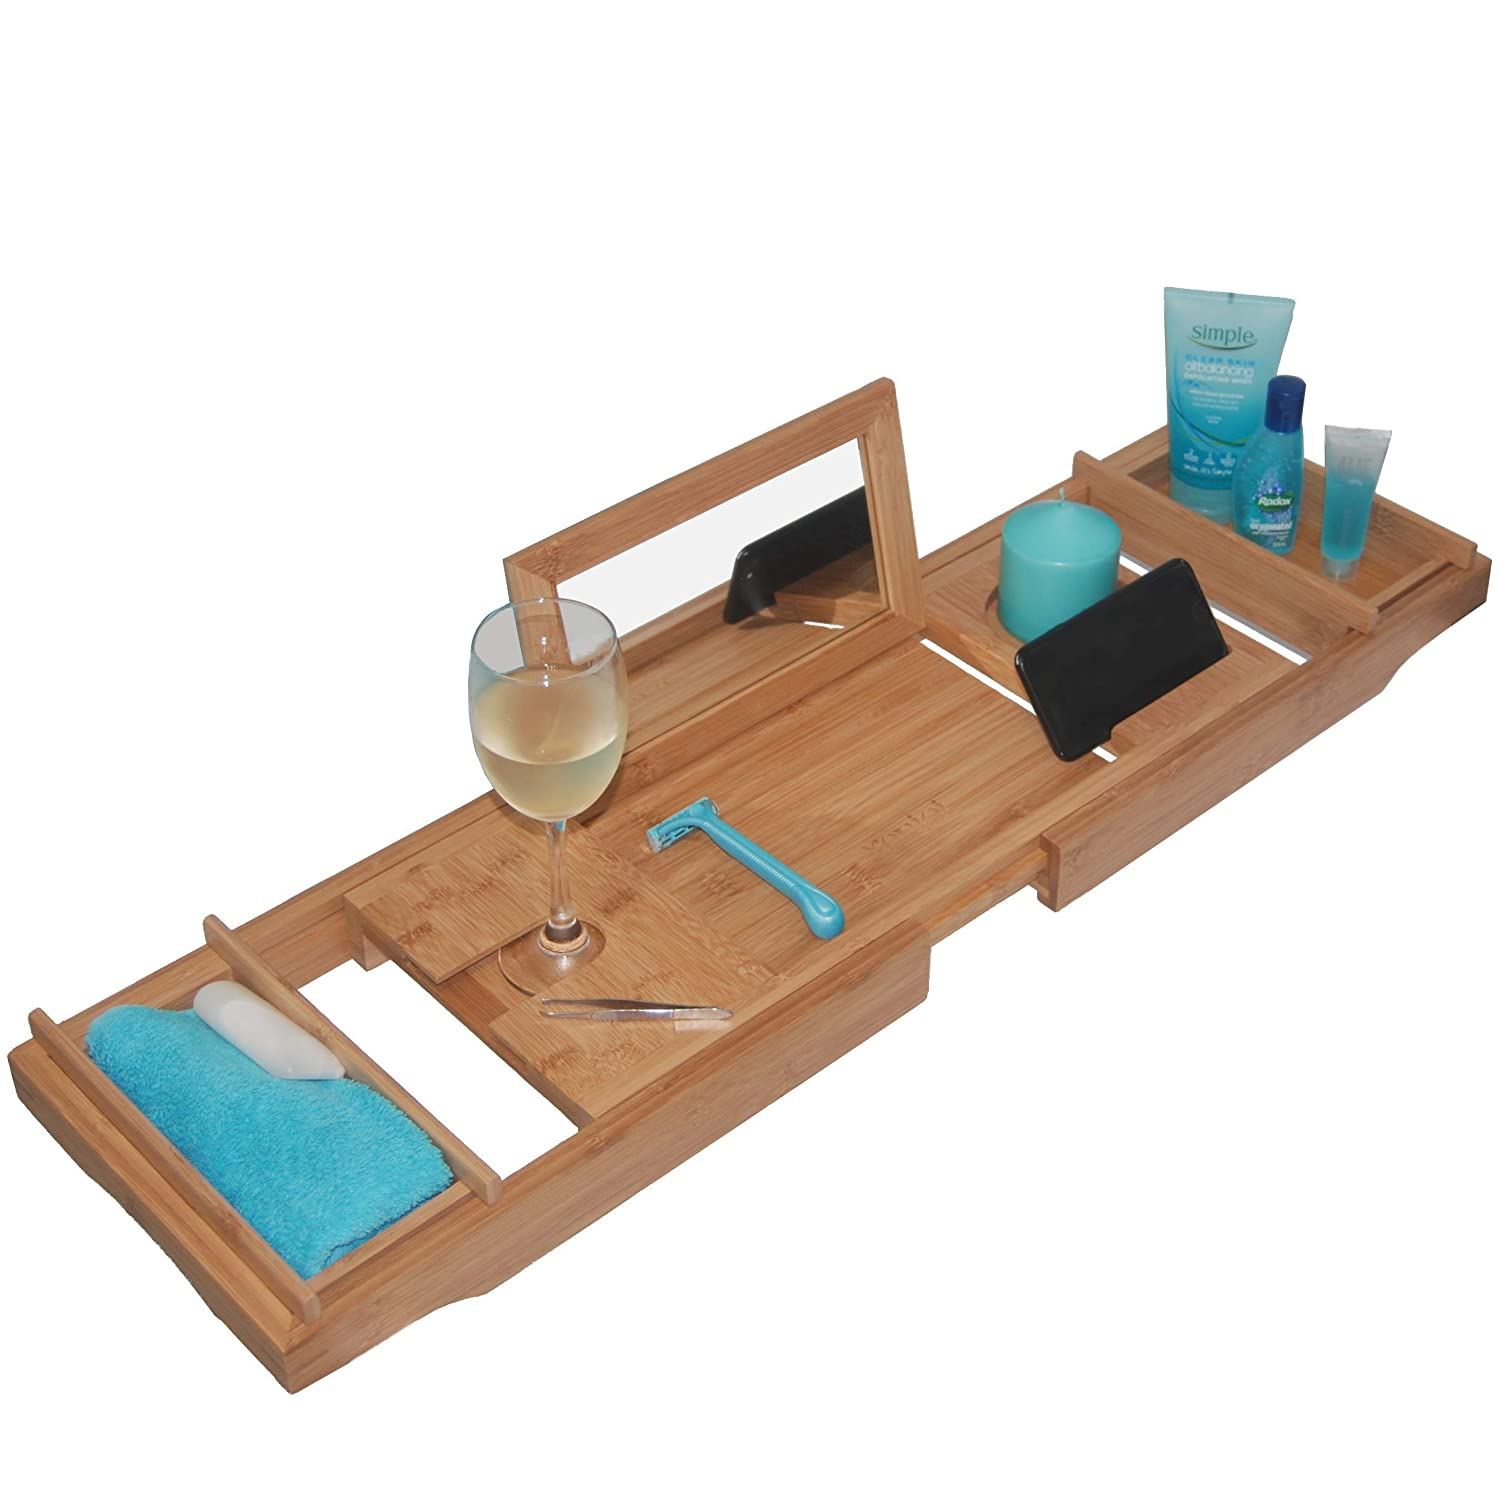 - THIS ONE HAS A MIRROR - Our Luxury Bamboo Bathtub Tray / Bathtub Caddy with MIRROR also comes with Extending Non Slip Sides, Wine Glass Holder, 2 Removable Storage Shelves & Much More xenjoi X-1996